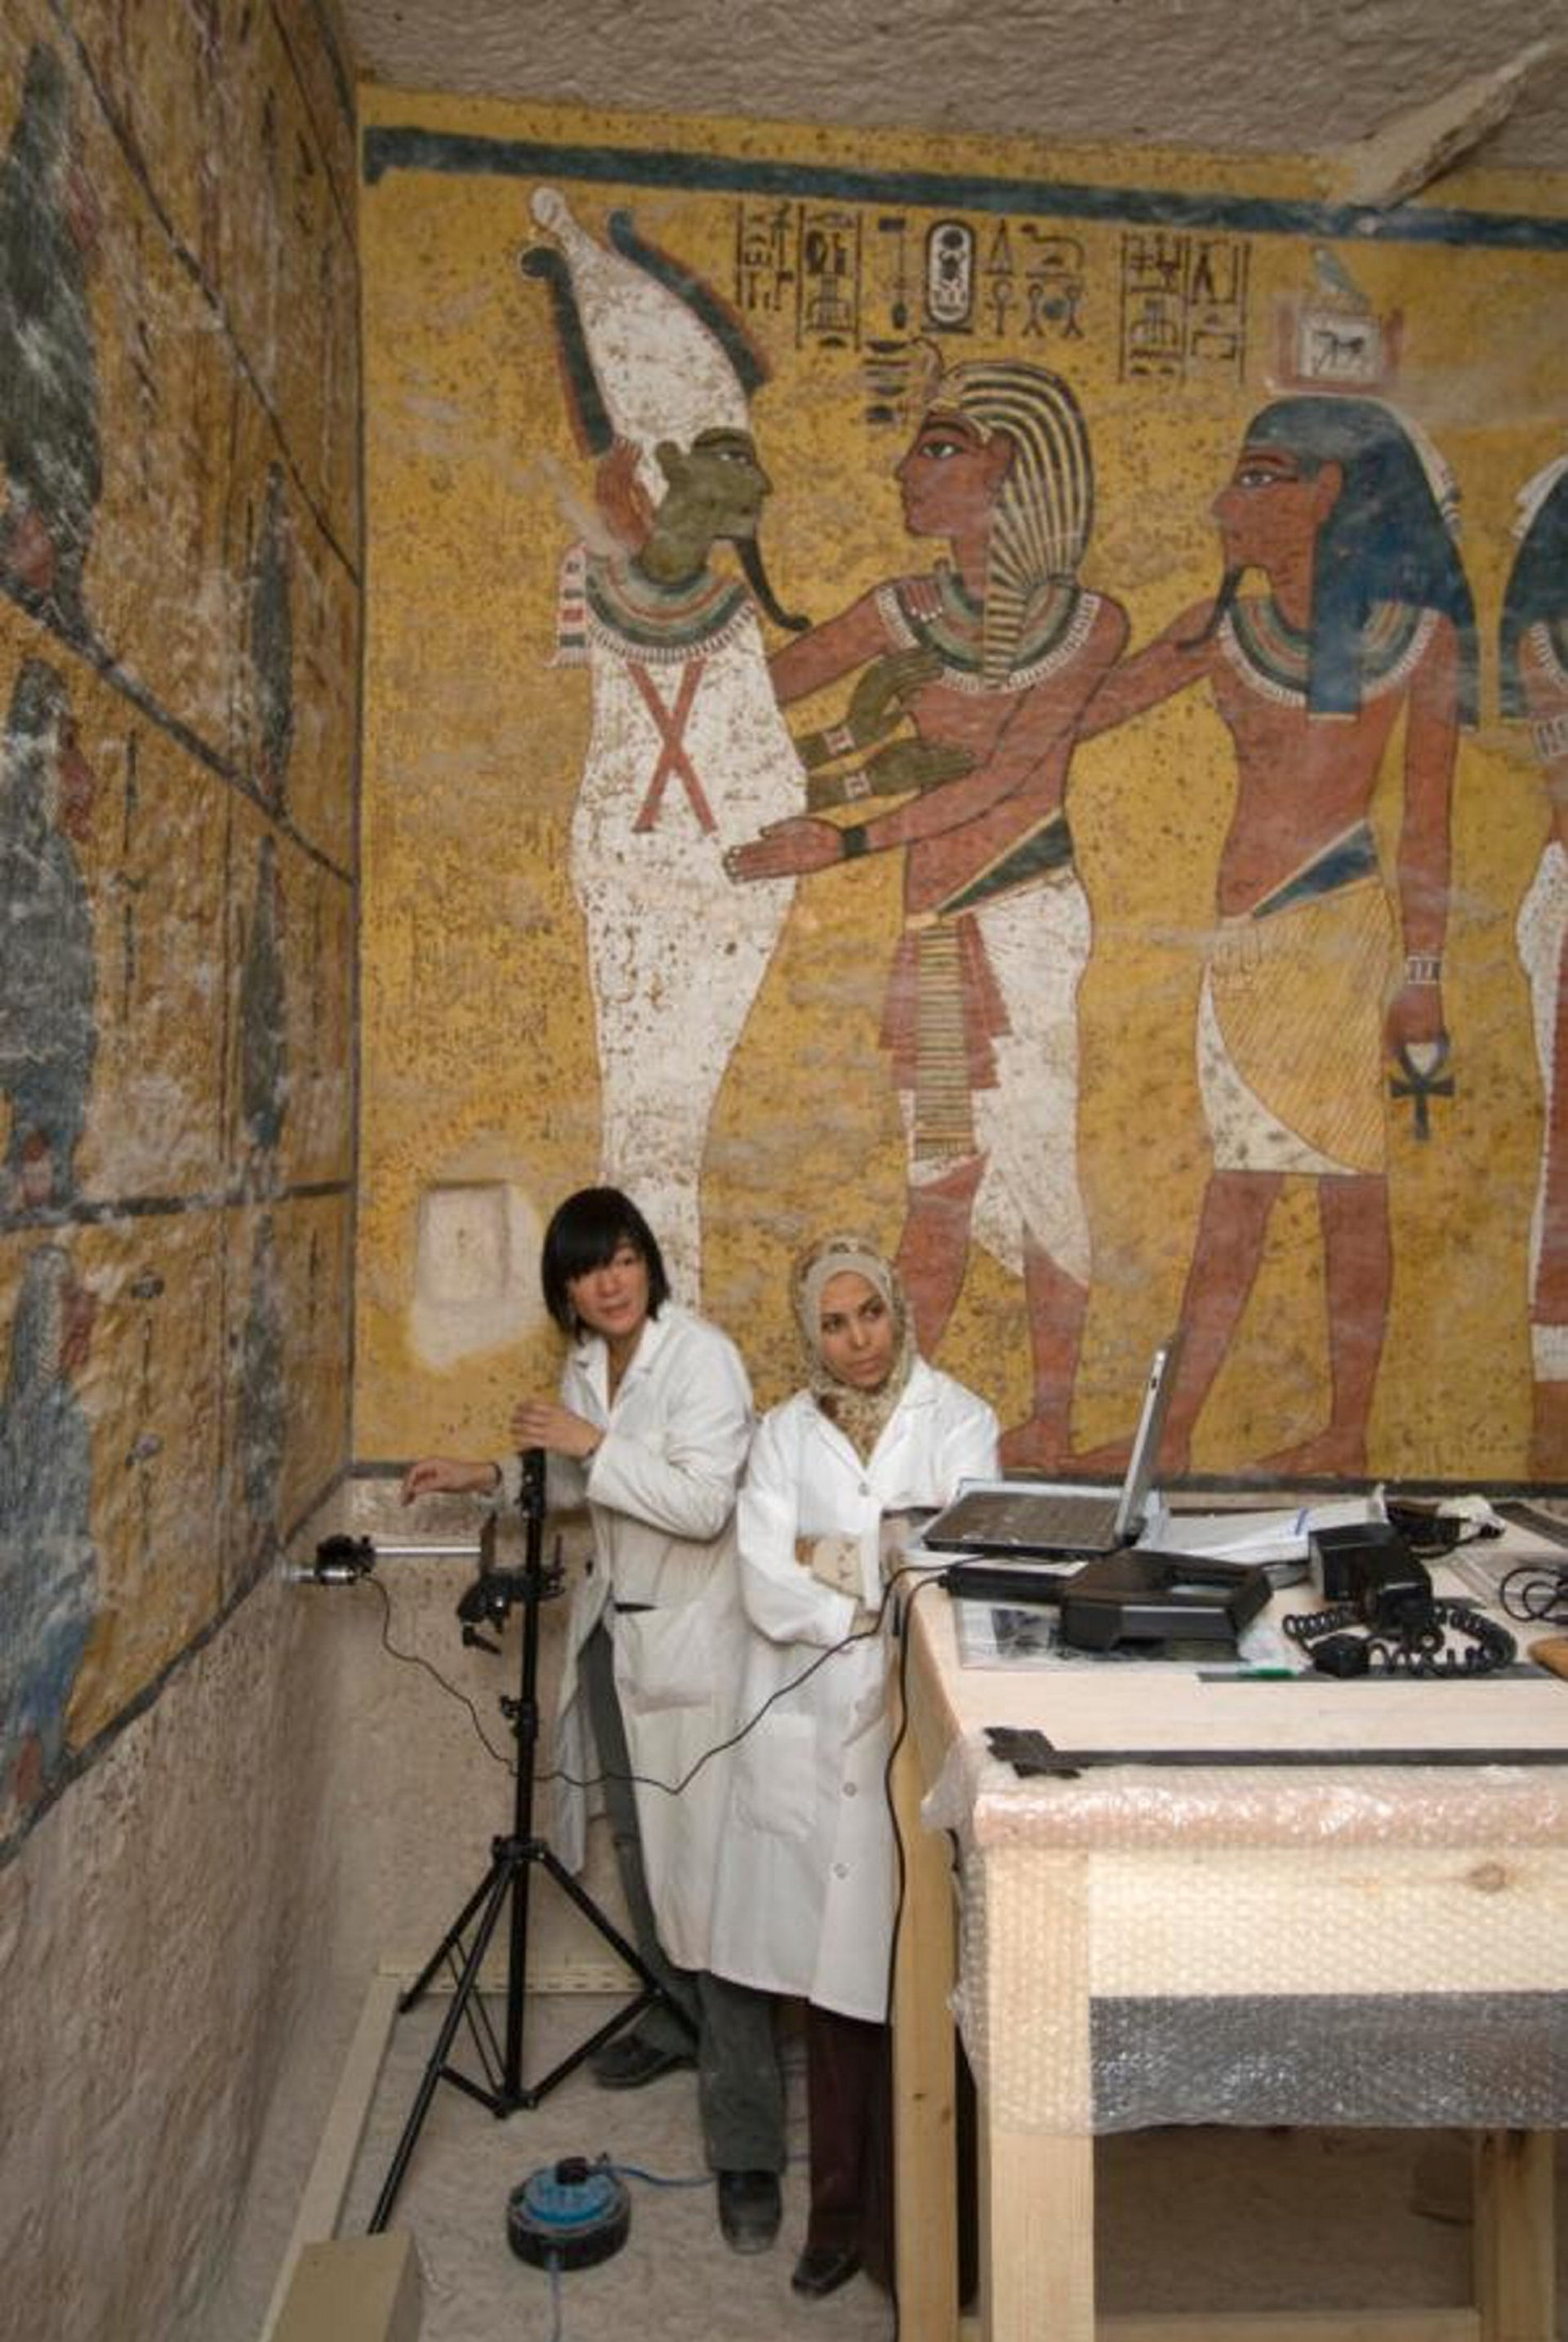 Conservators using a portable microscope linked to a tablet to monitor the paintings on the west wall of Tutankhamun's Tomb, Egypt, February 2009.